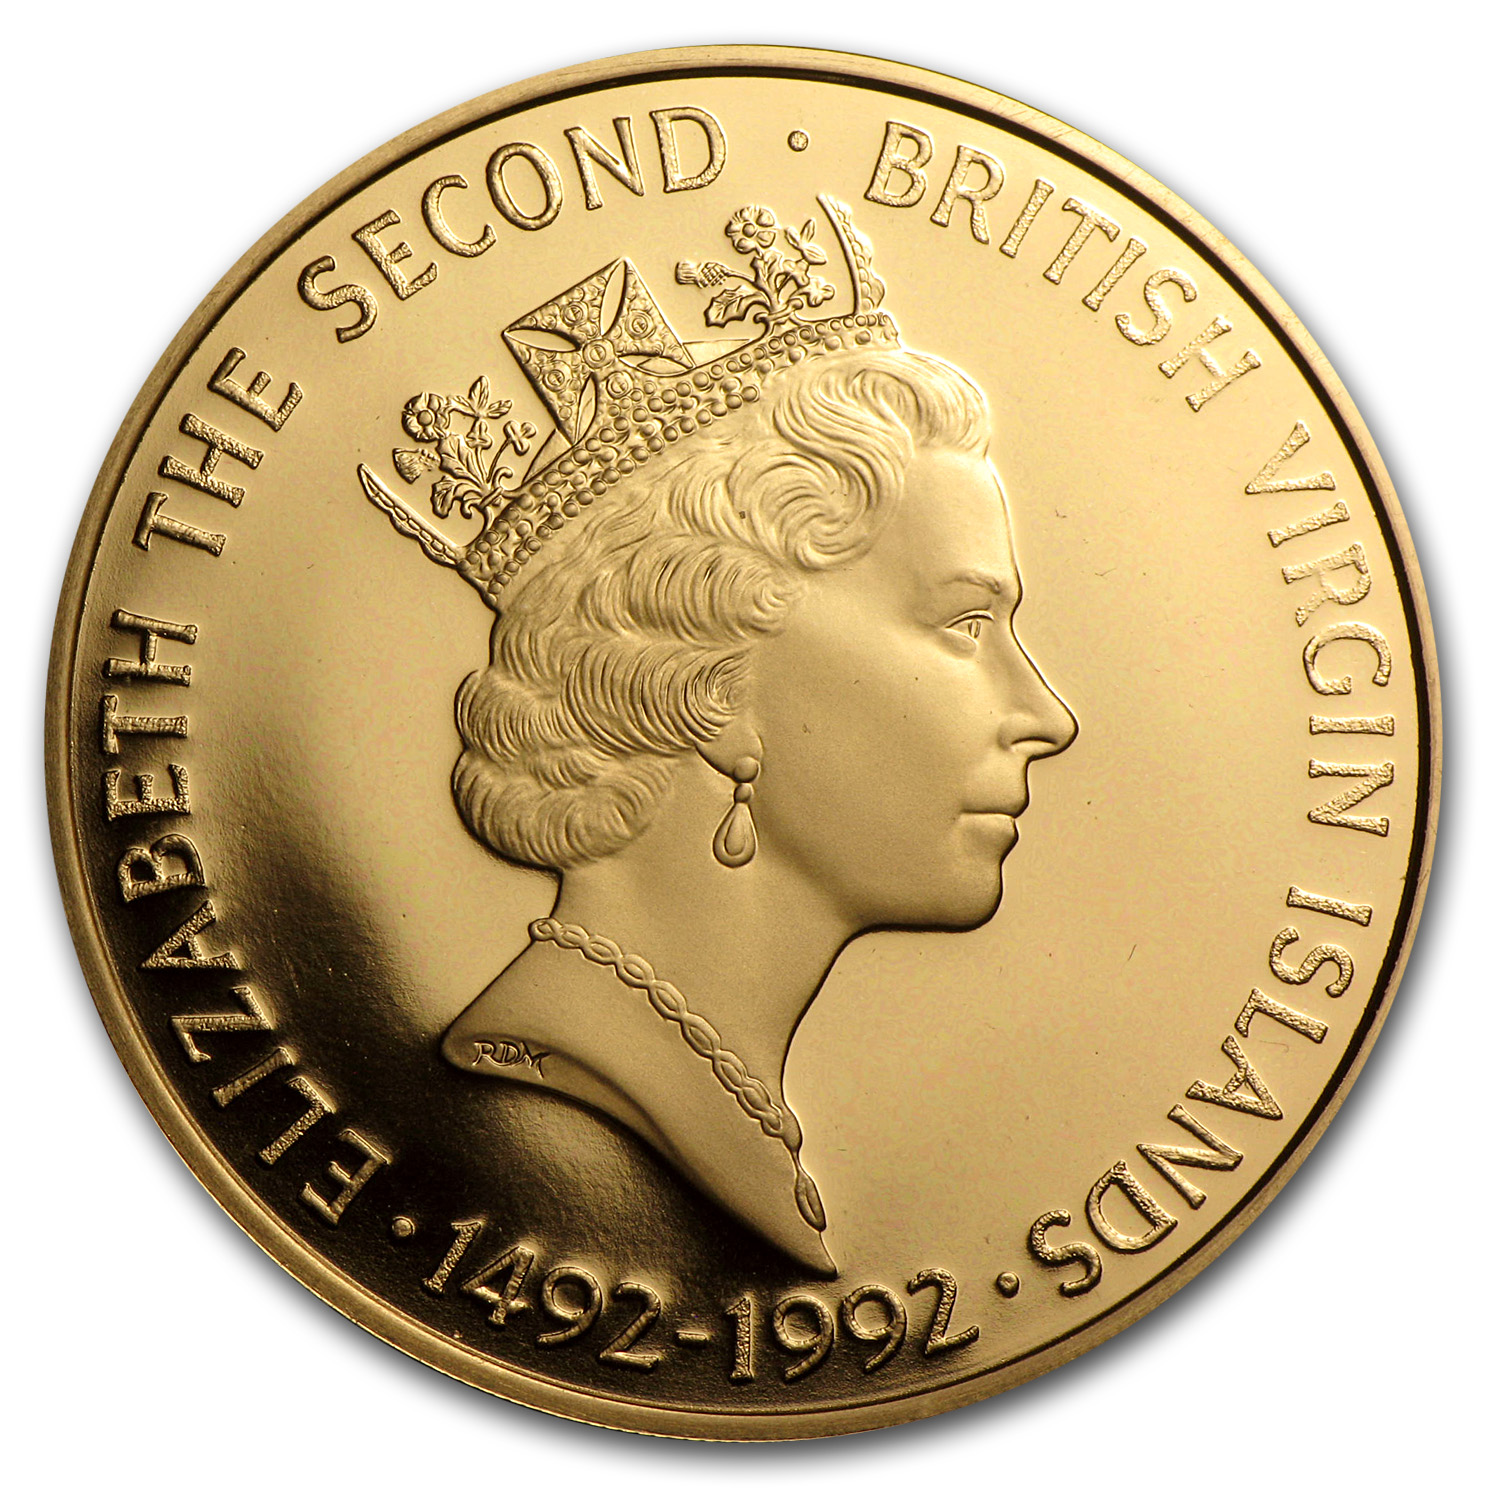 1992 British Virgin Islands Proof Gold $500 Columbus